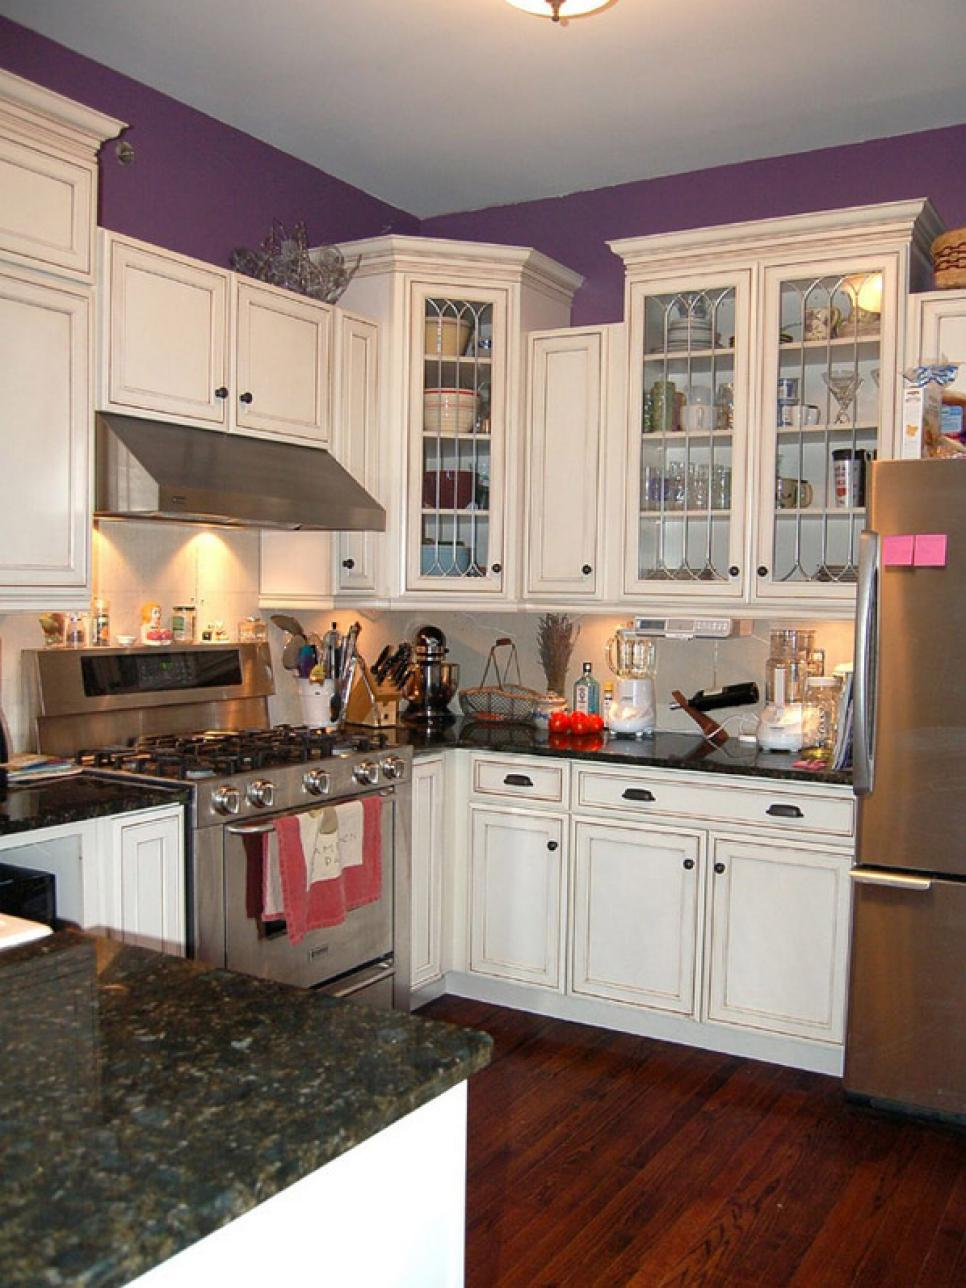 Small kitchen design ideas and solutions hgtv for Small kitchen units designs